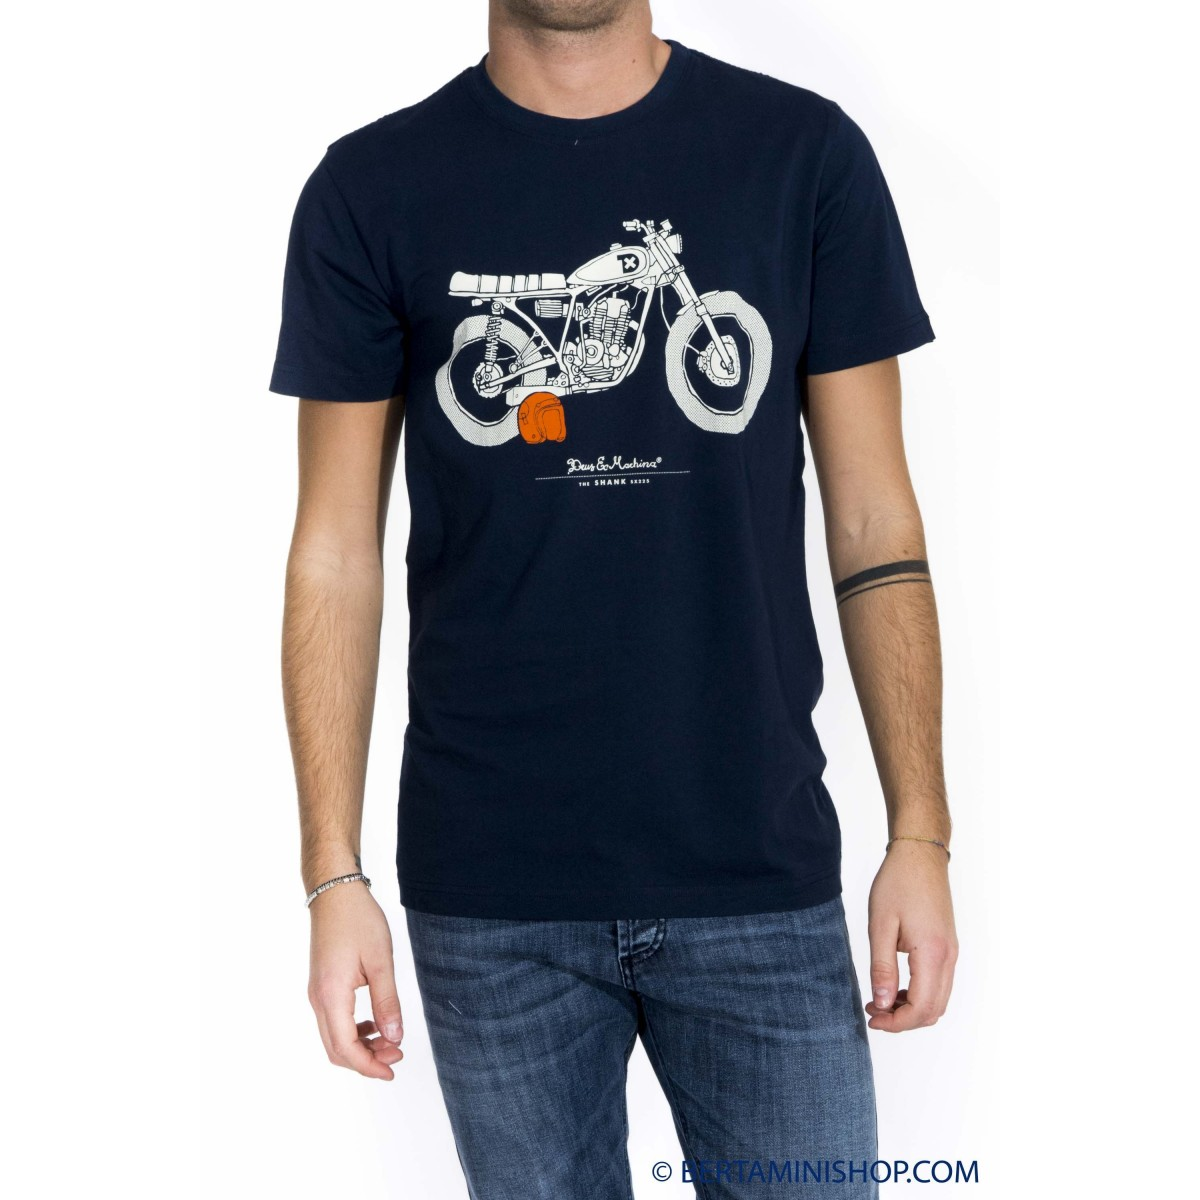 T-shirt uomo Deus ex machina - Dmw41808k